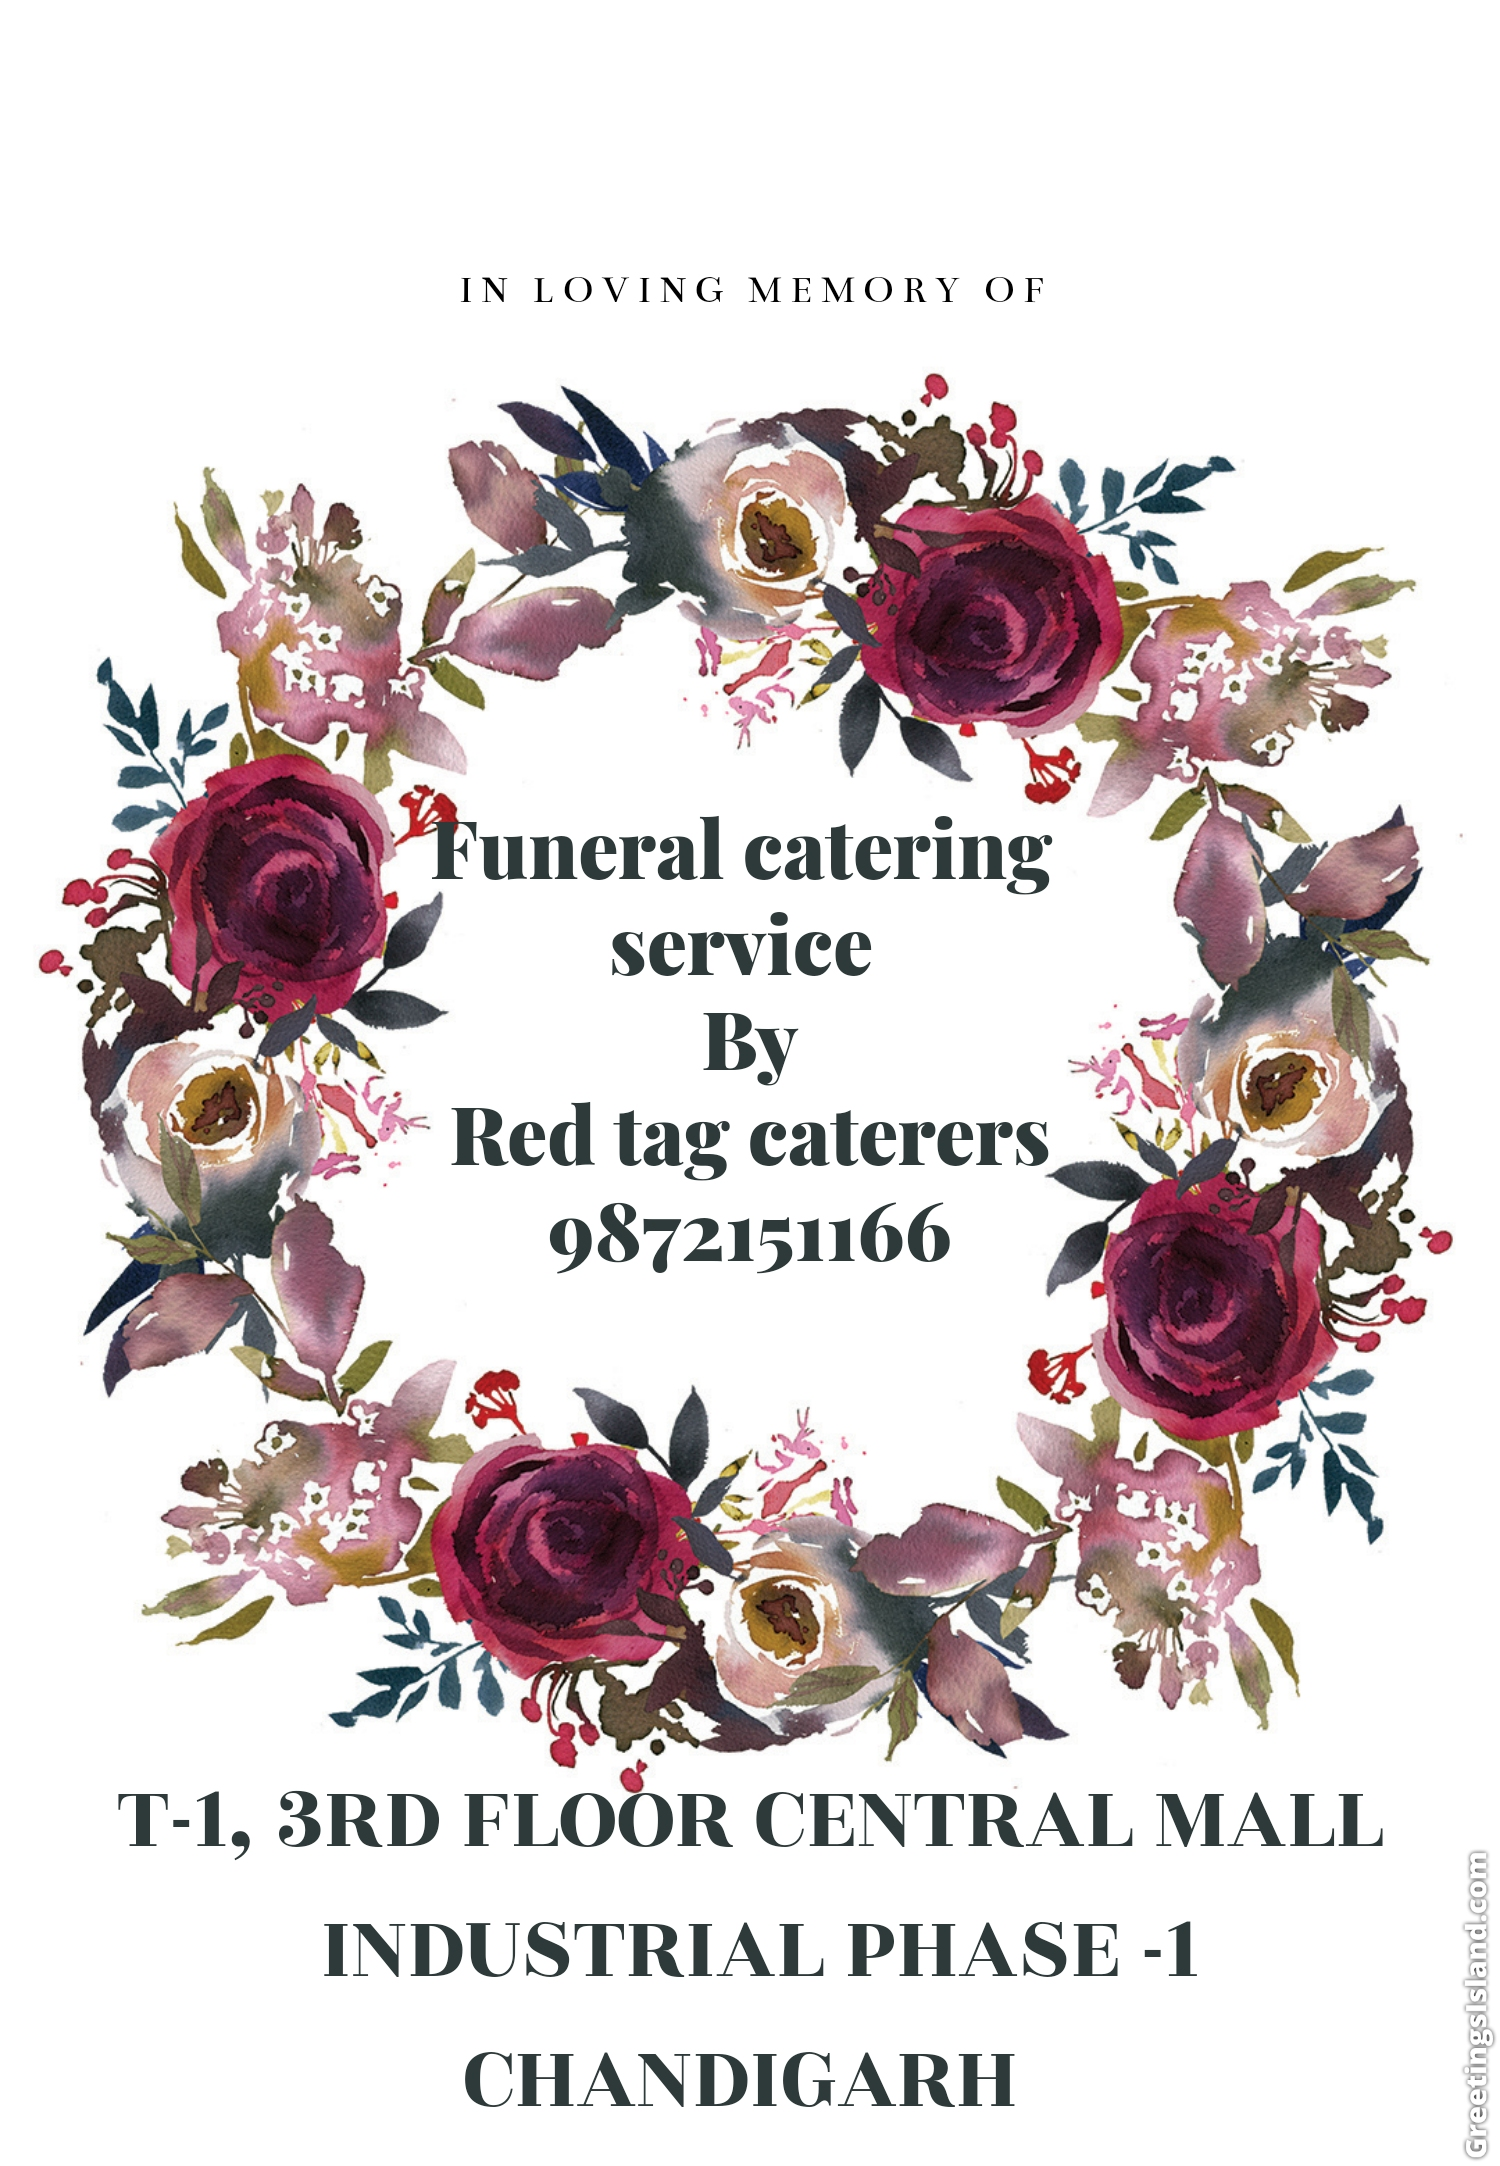 Red Tag Caterers, Funeral catering service in Derabassi, catering service in Derabassi, affordable catering service in Derabassi